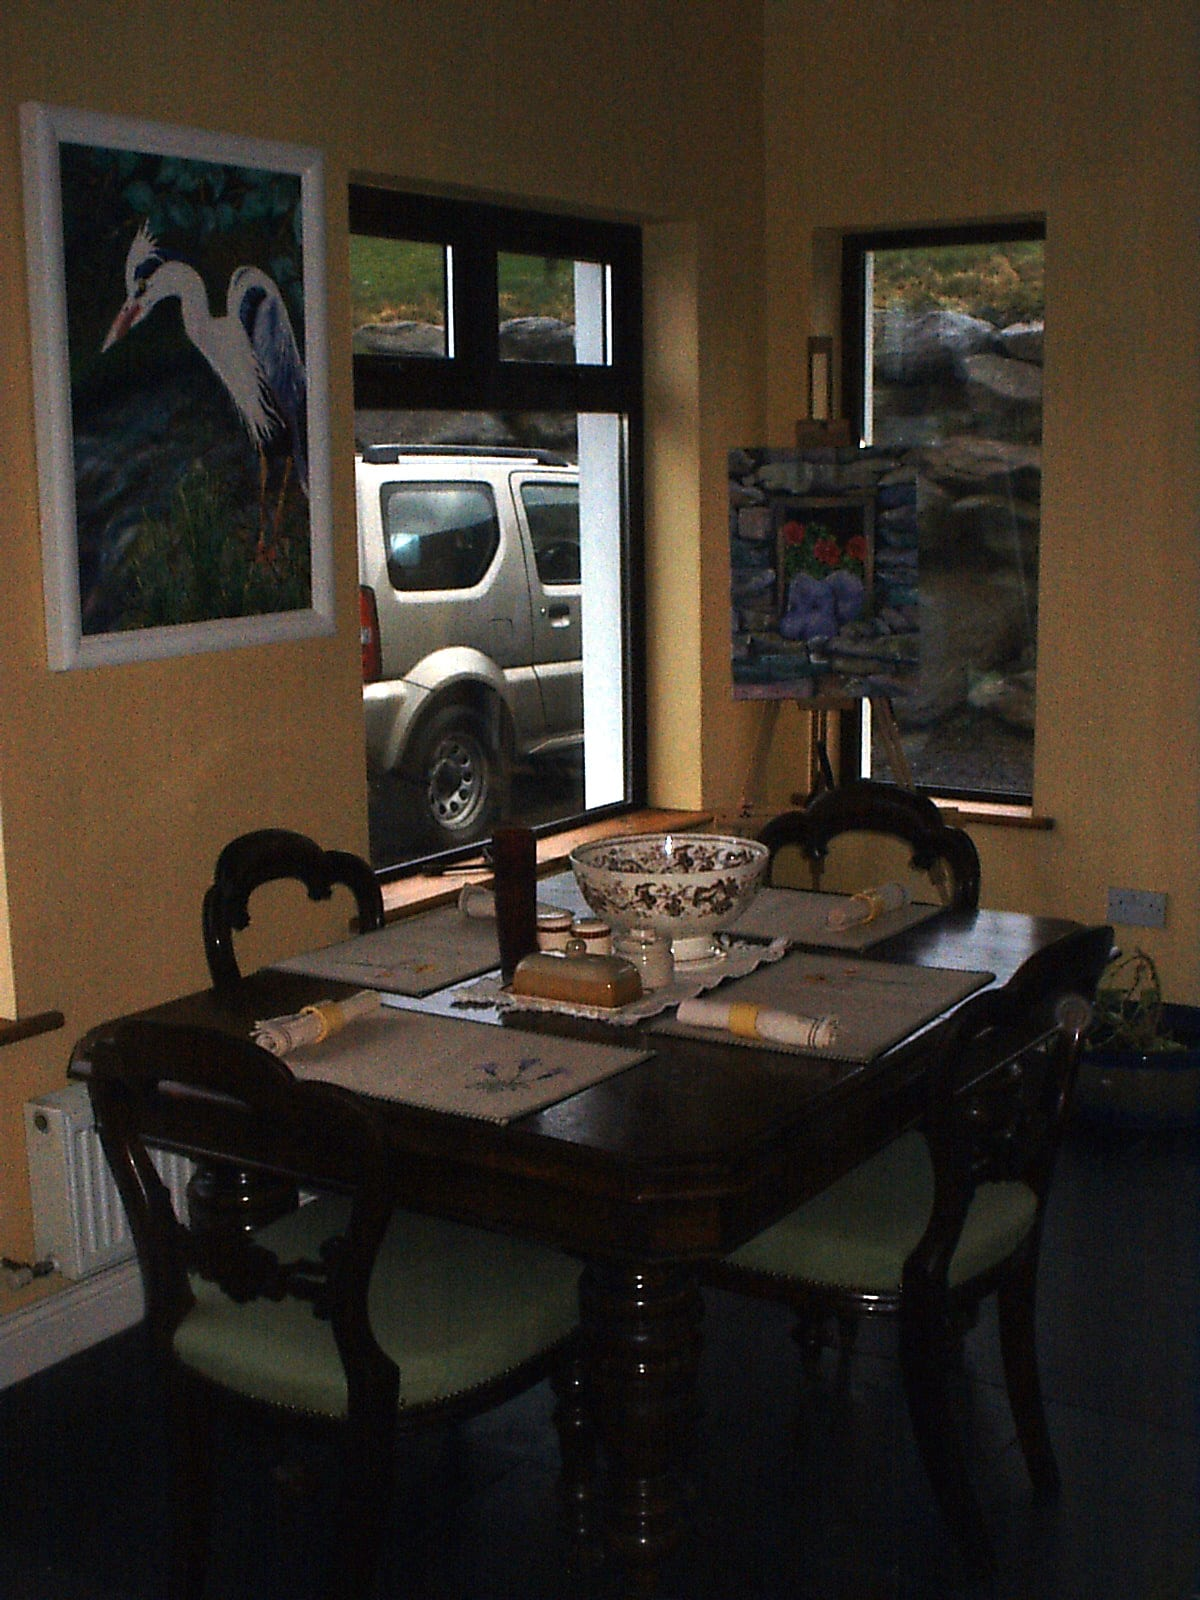 Breakfast room with views of lambs in the adjacent field.